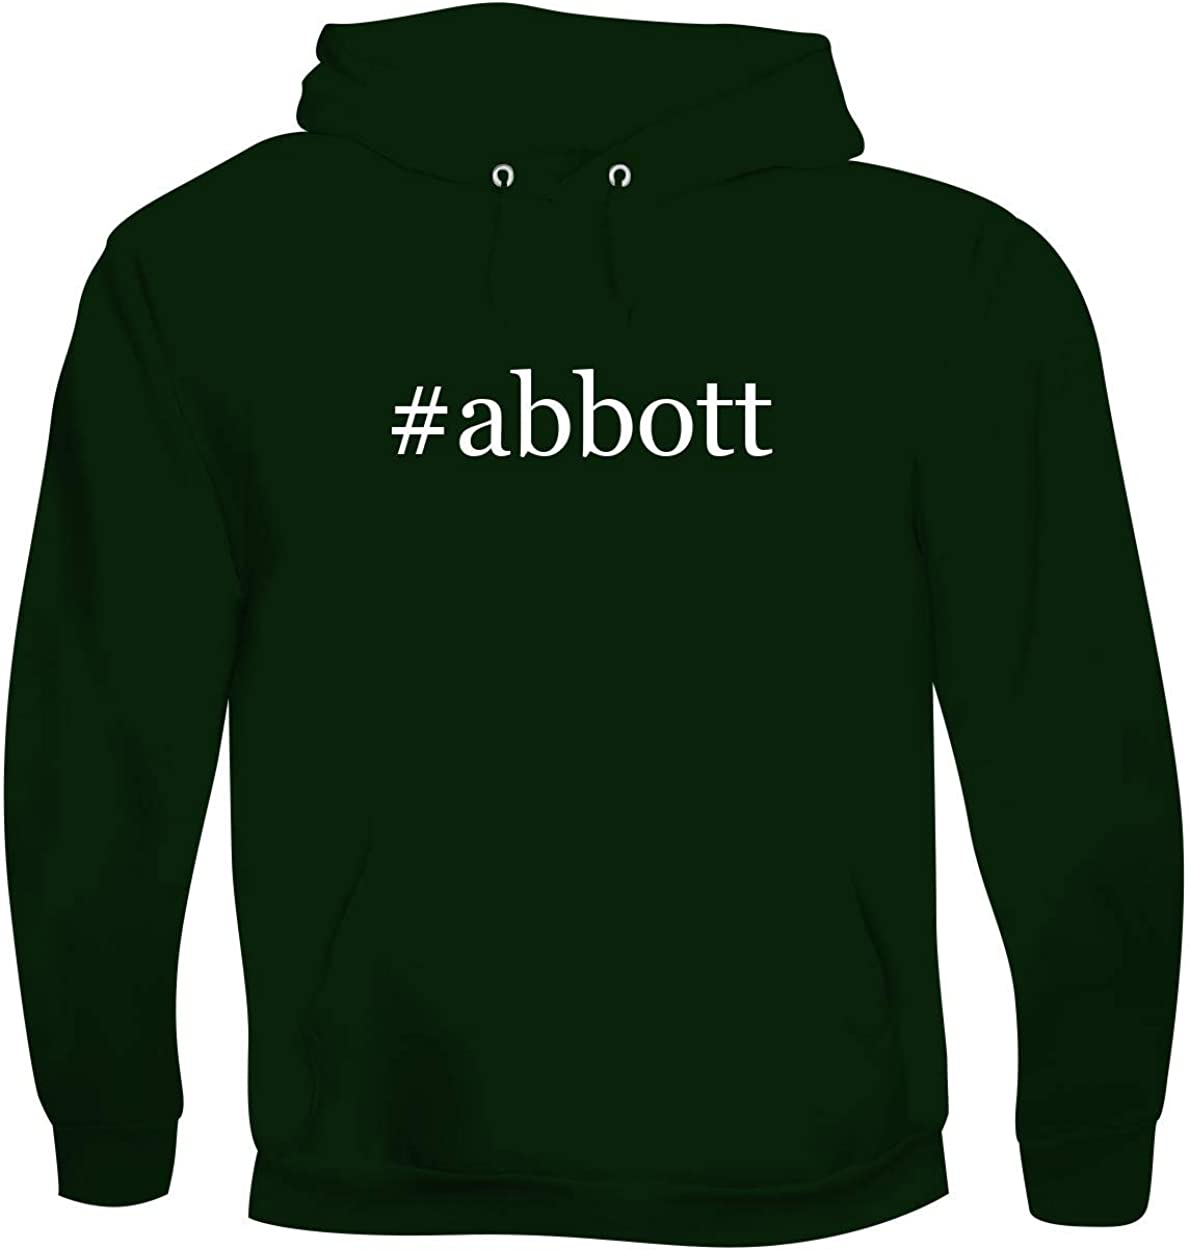 #abbott - Men's Hashtag Soft & Comfortable Hoodie Sweatshirt Pullover 51nD9F1p%2BiL